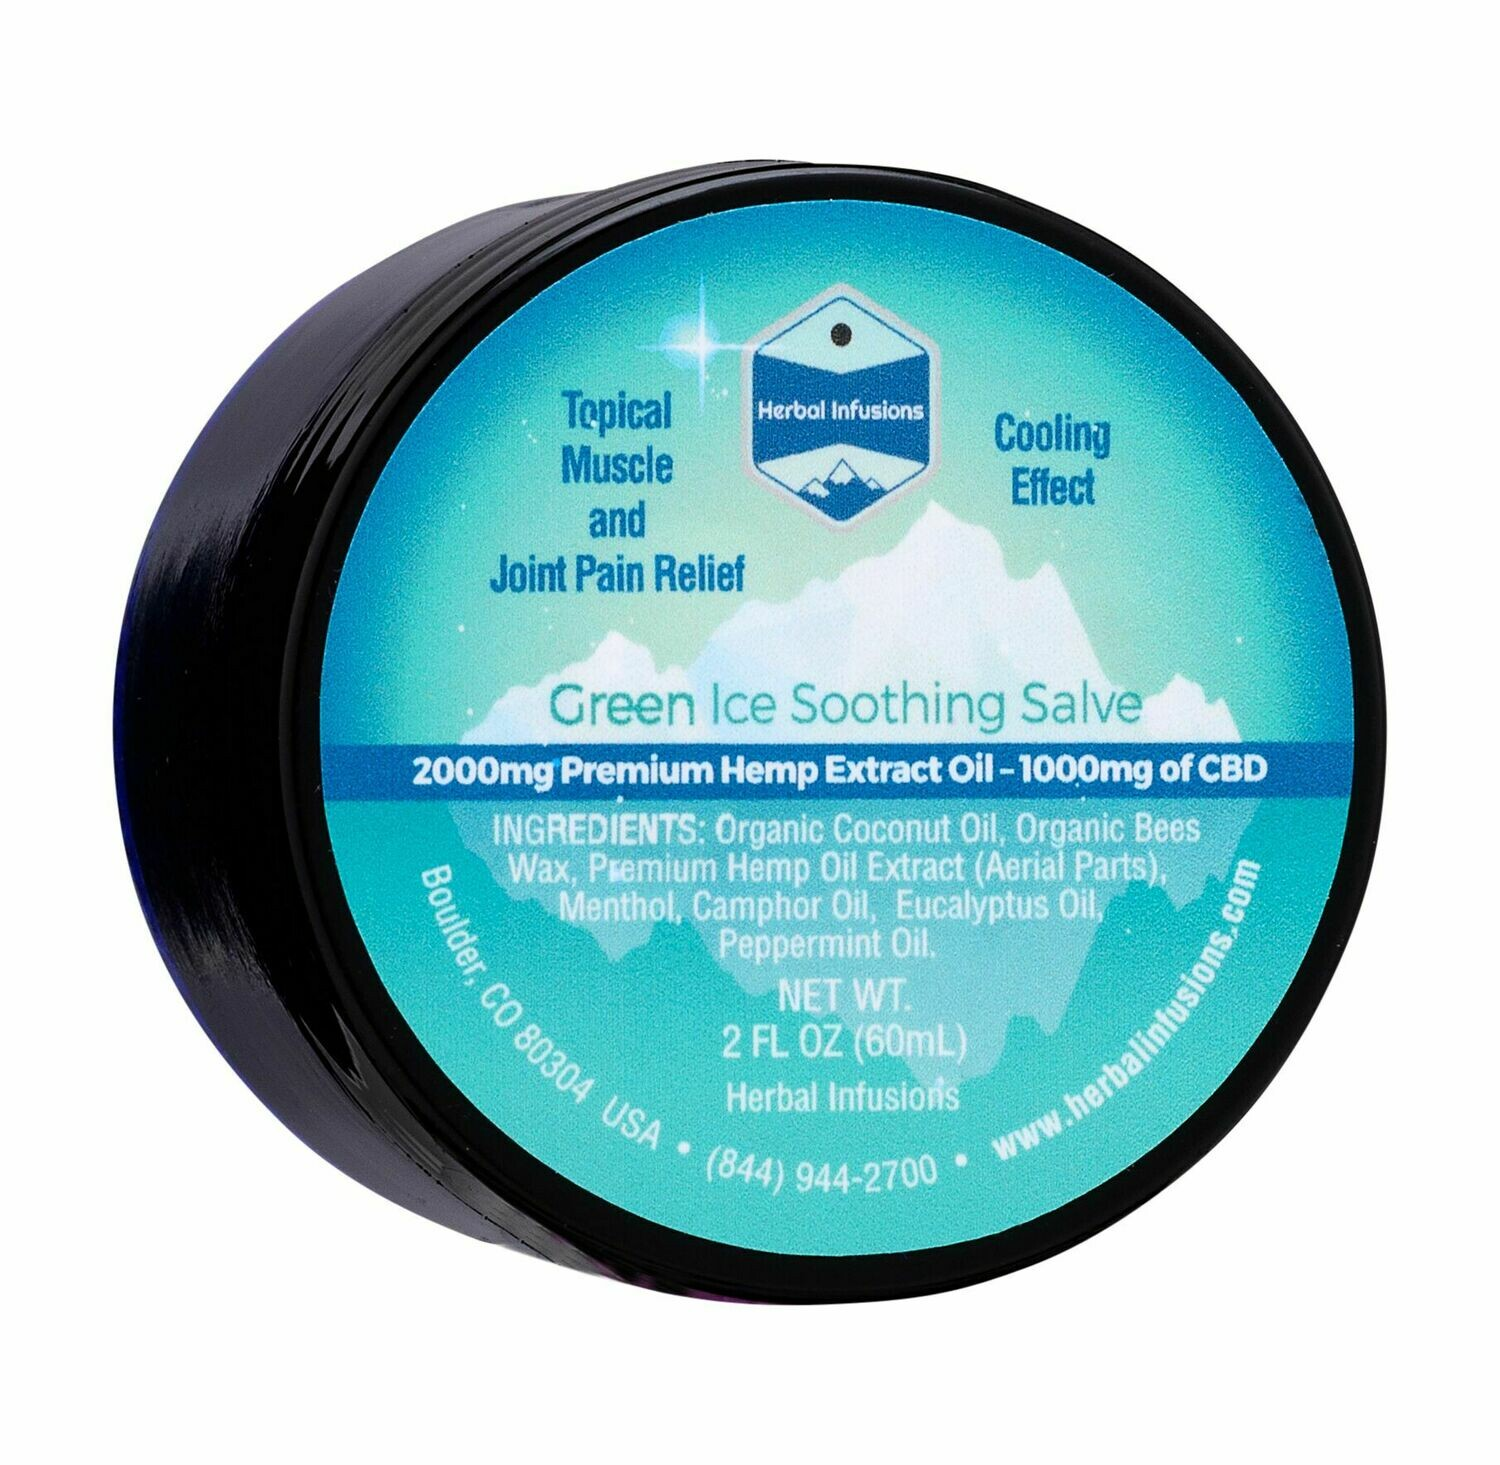 Green Ice Soothing Hemp Extract Salve